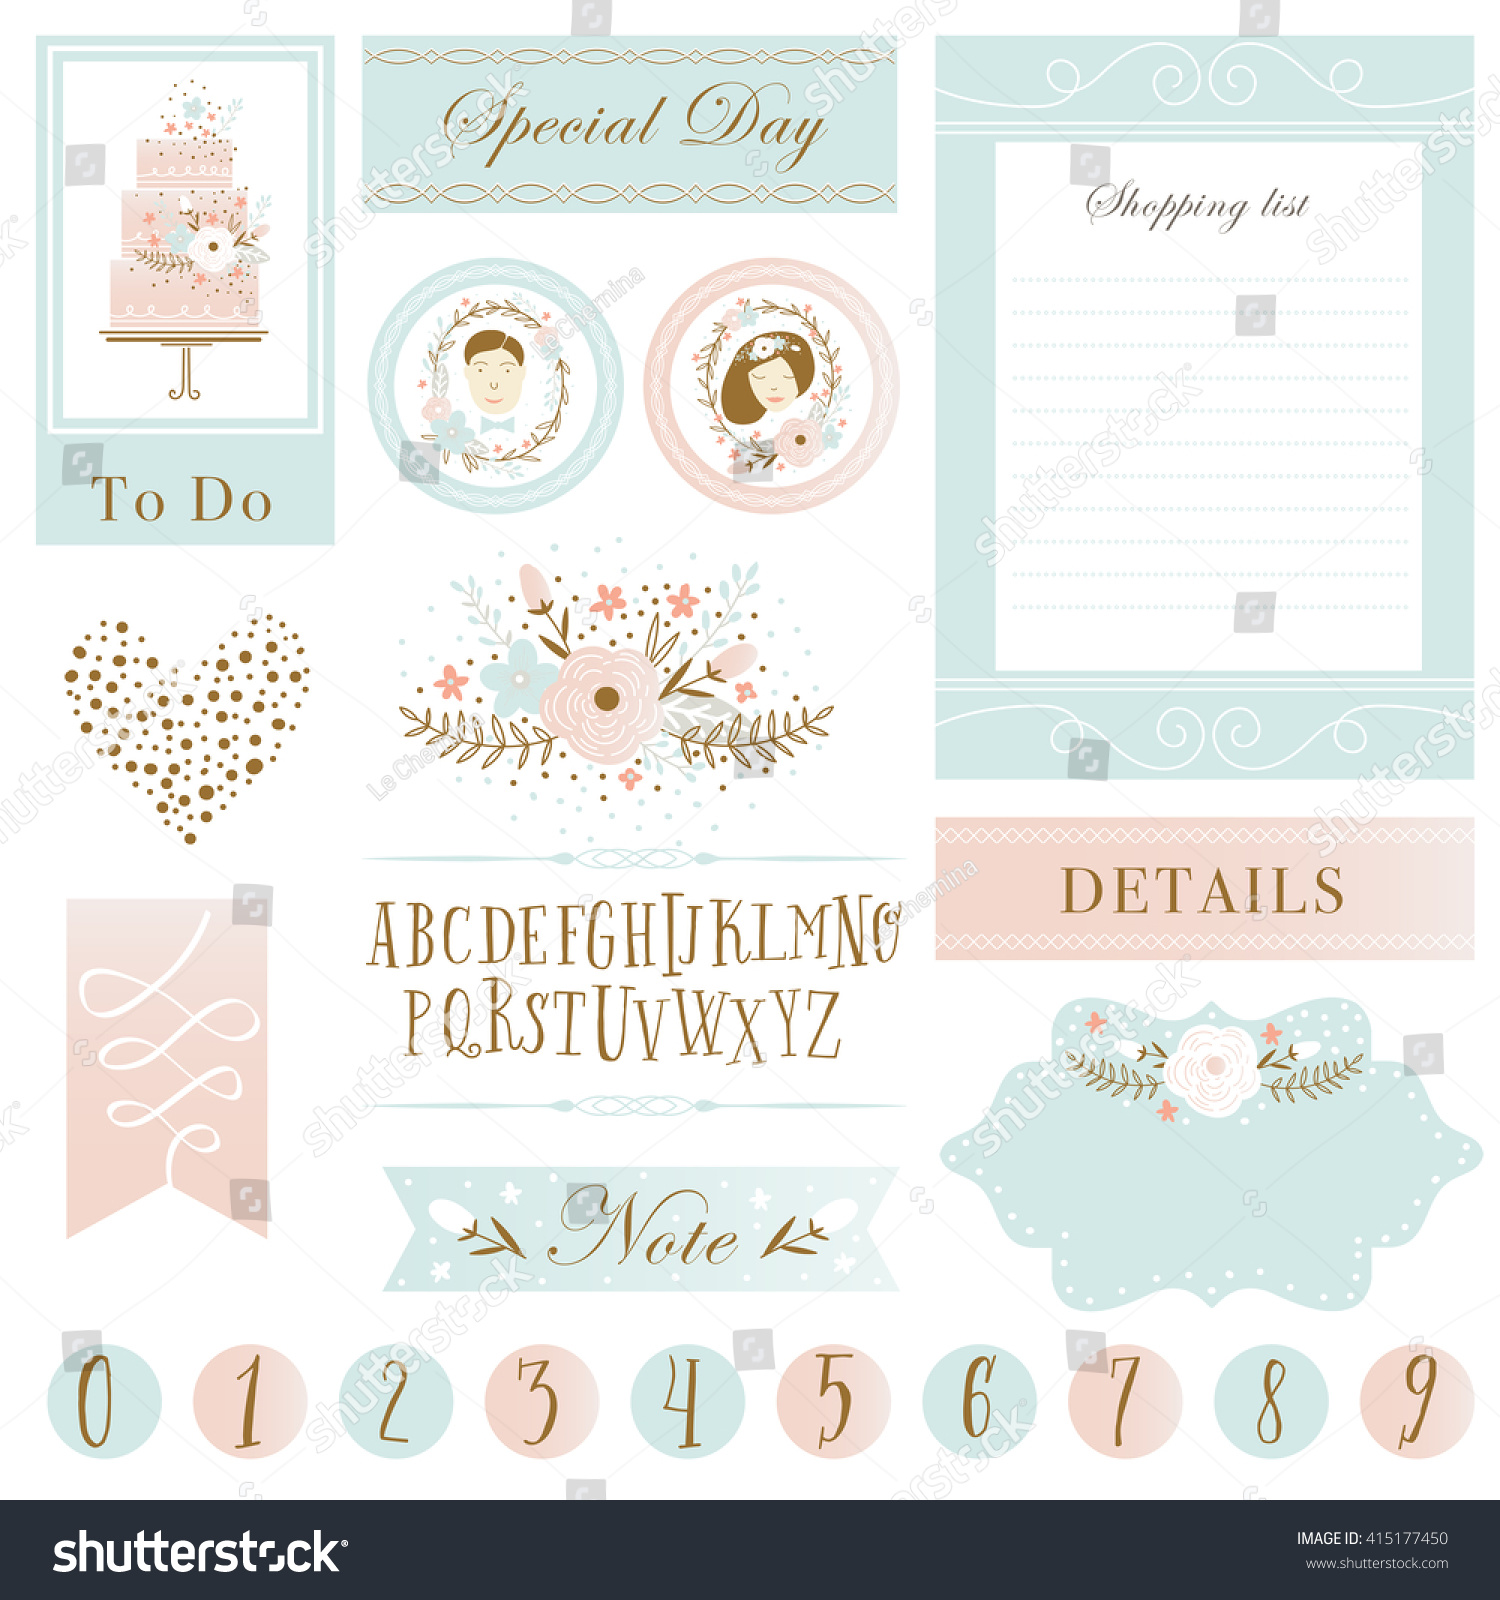 Romantic Love Cards Stickers Notes Labels Stock Vector Royalty Free